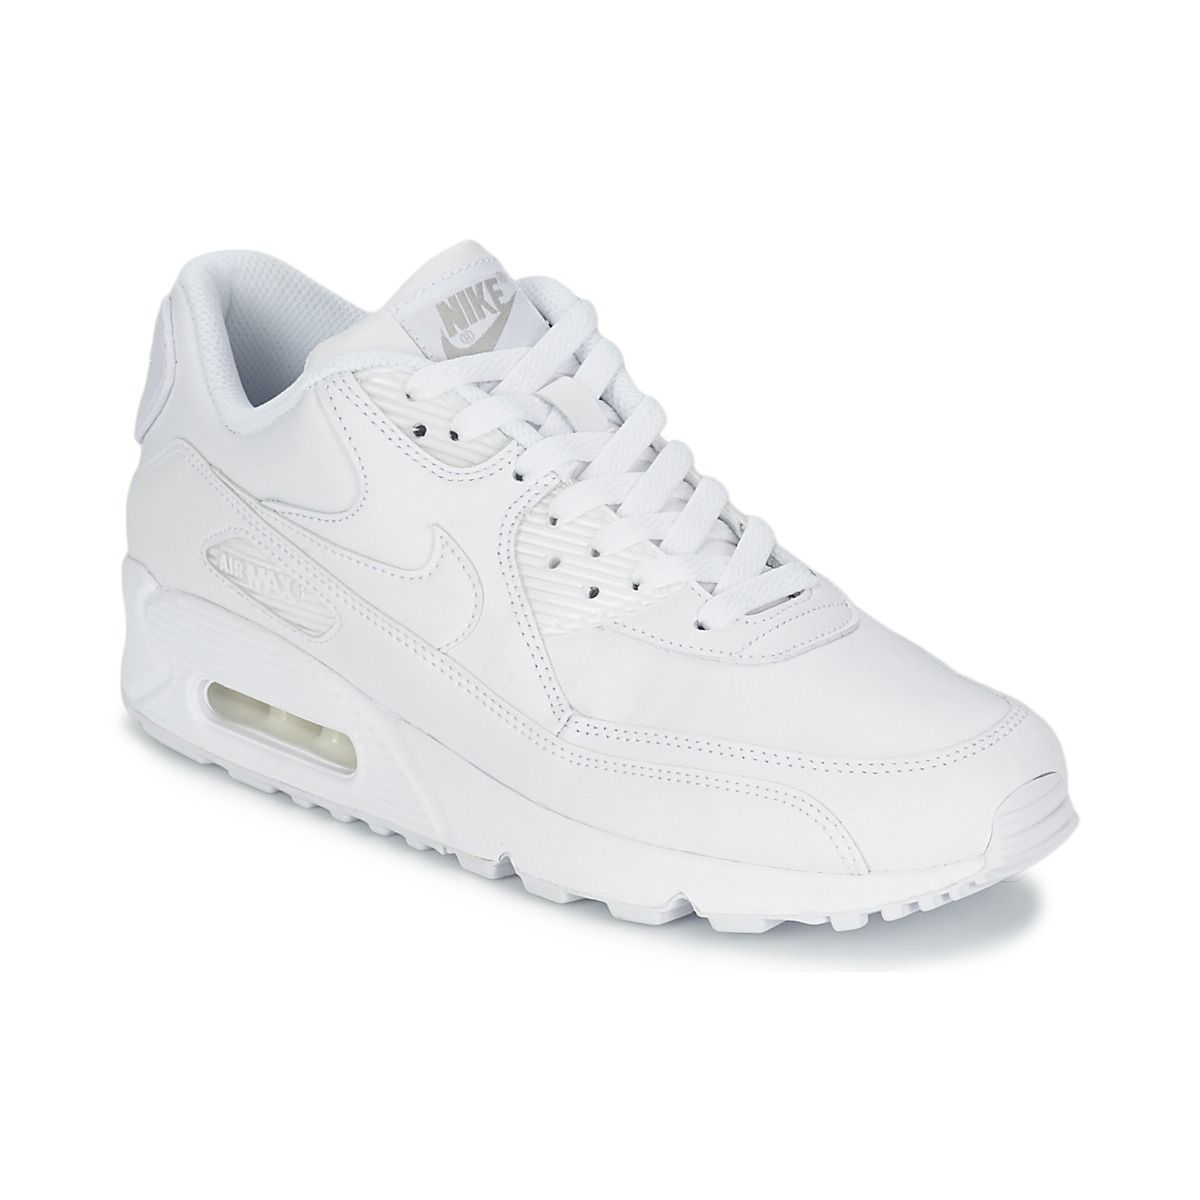 newest 1f7db f21b6 Baskets basses Nike AIR MAX 90 ULTRA ESSENTIAL W Blanc   Gris prix promo  Baskets Femme Spartoo 145.00 €